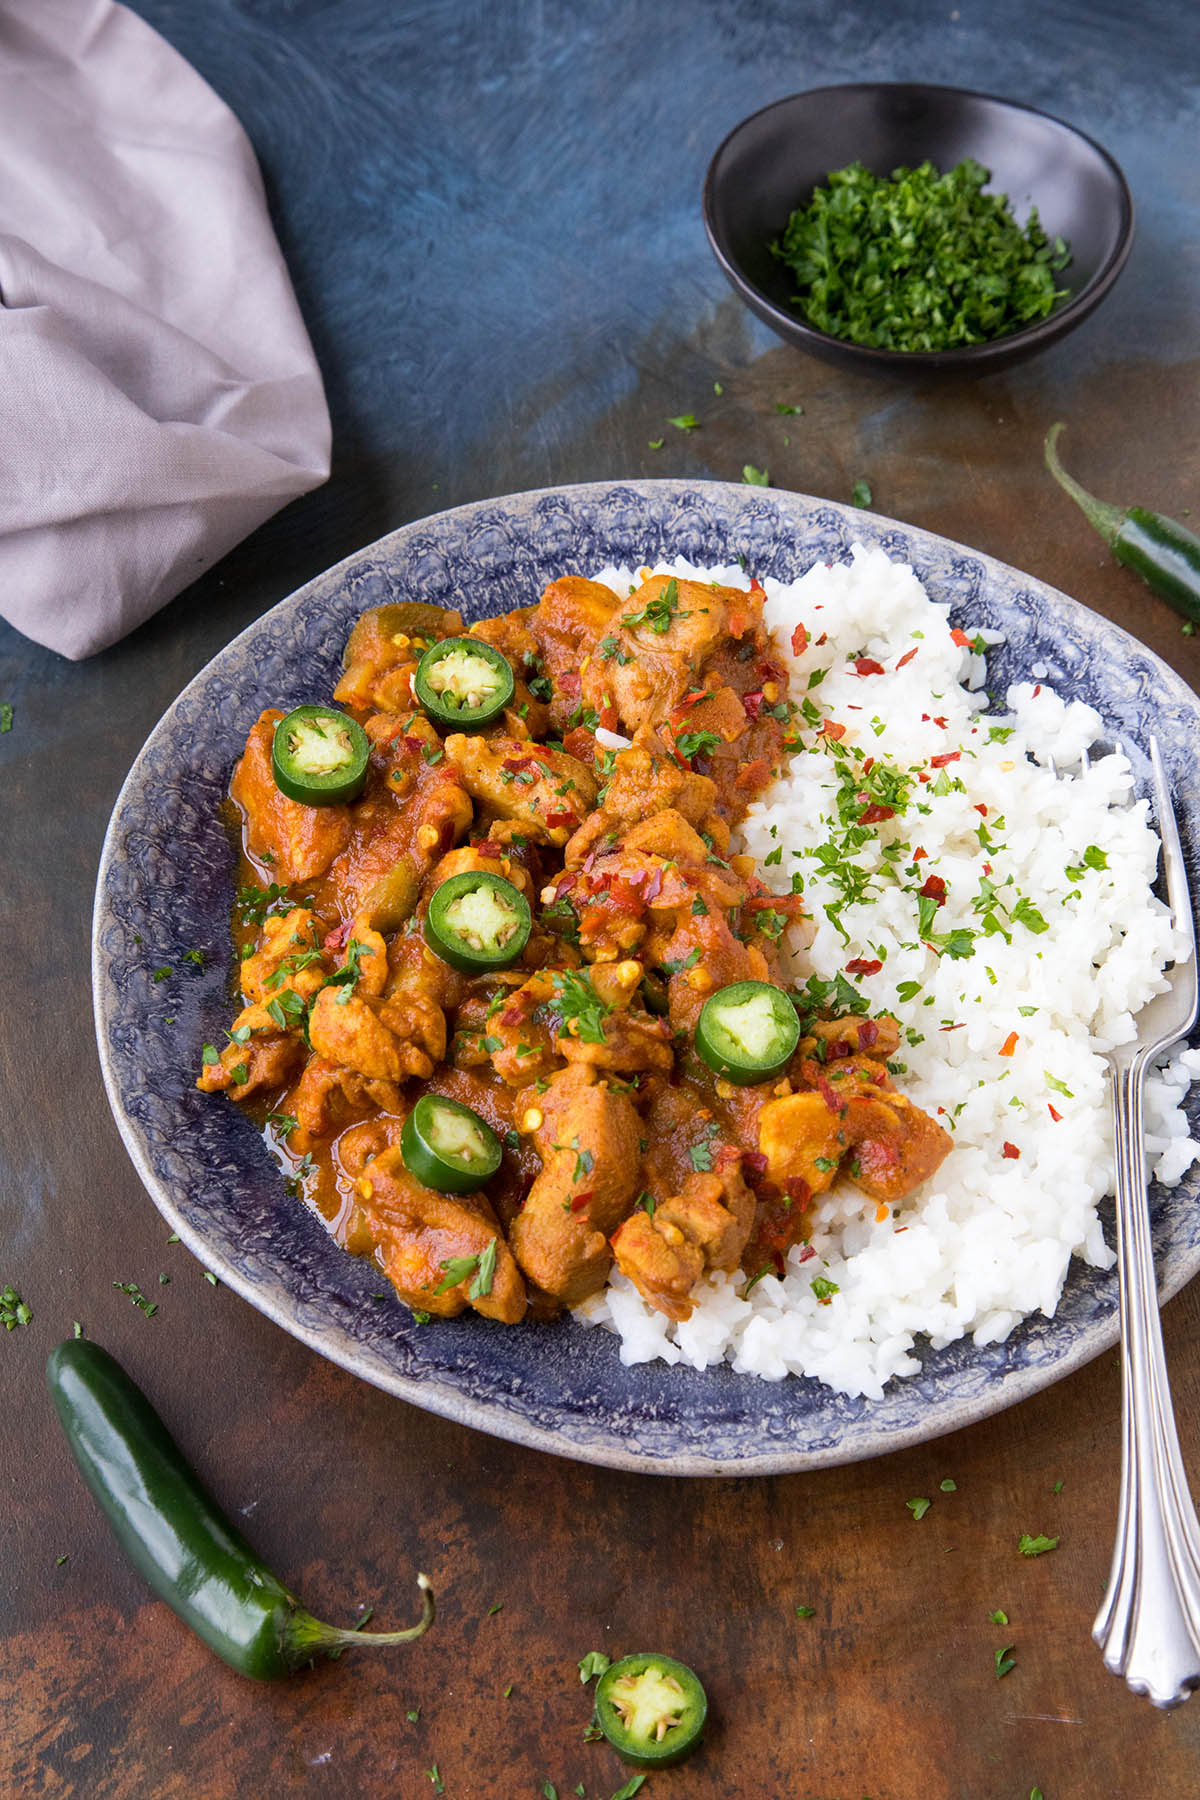 Fiery Chicken Vindaloo - Served Over Rice